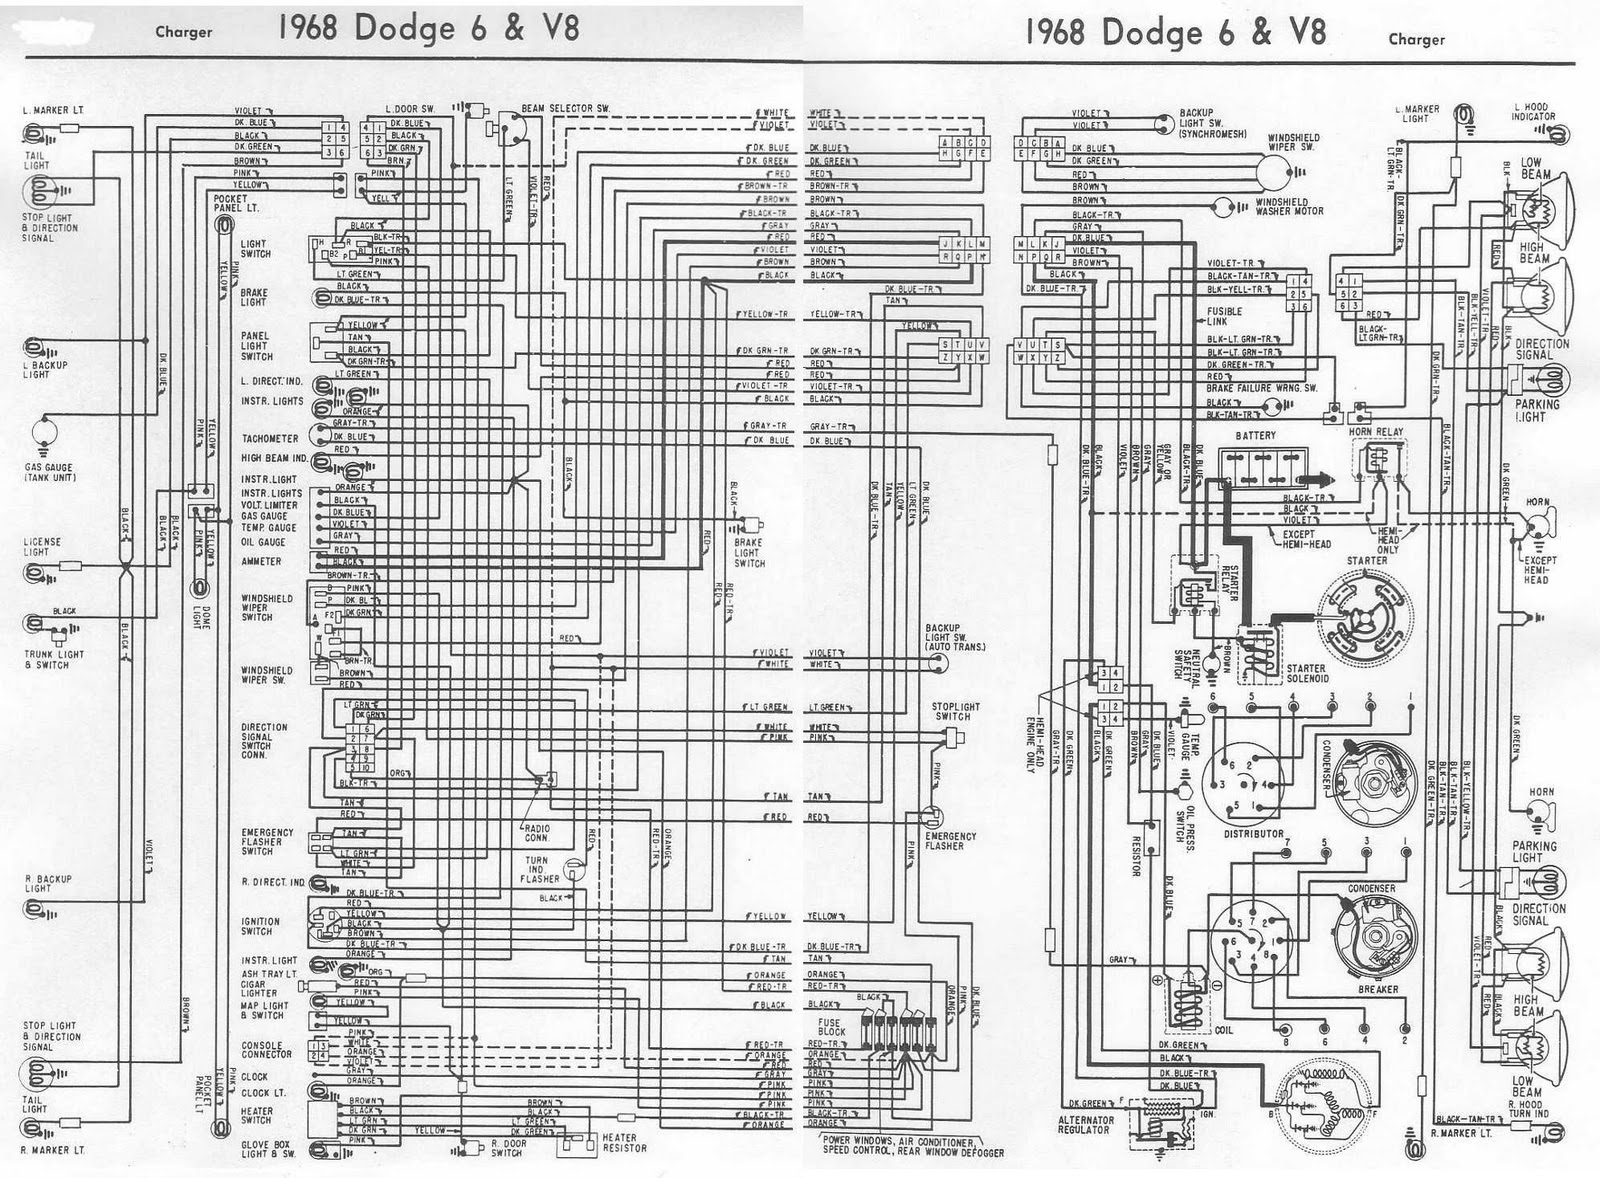 2012 Dodge Charger Tail Light Wiring Diagram Chevy Diagrams For Cars Passenger Car 1951 All Ac Ram The Diagramwiring